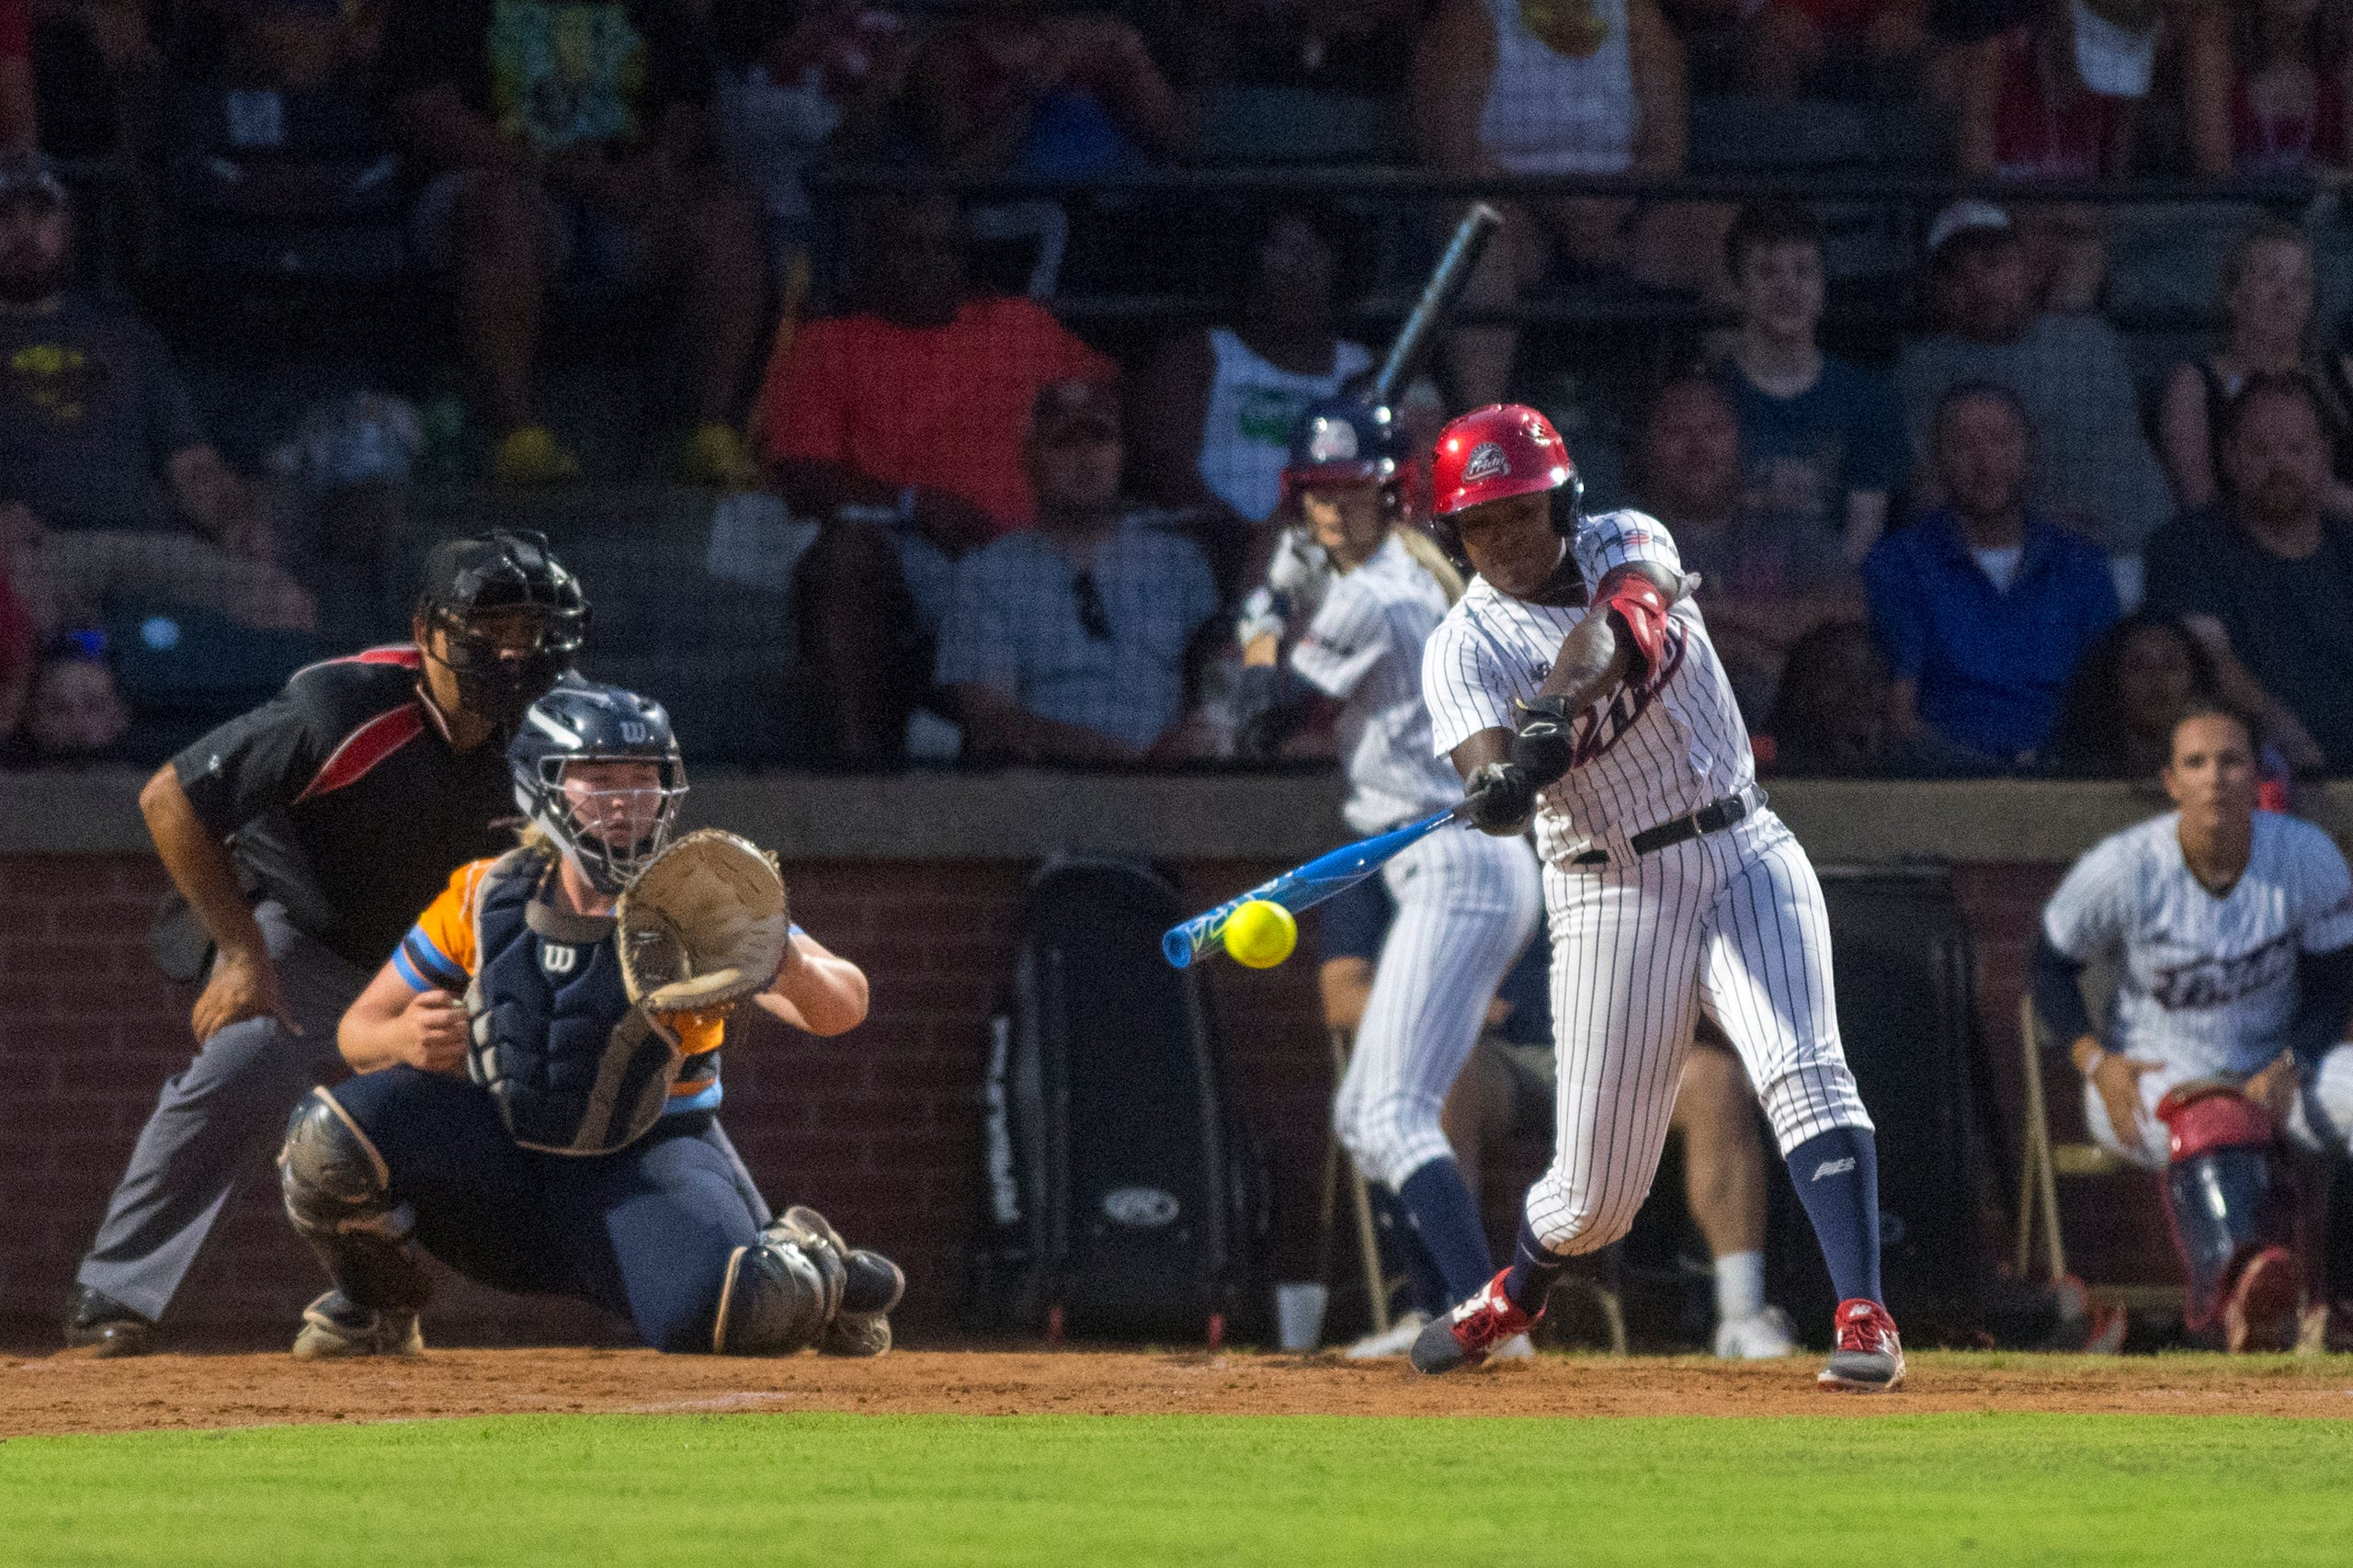 USSSA Pride's Shay Knighten (17) hits the ball as the USSSA Pride takes on Team Florida in an exhibition game at Bosse Field in Evansville, Ind., Wednesday evening, July 14, 2021.